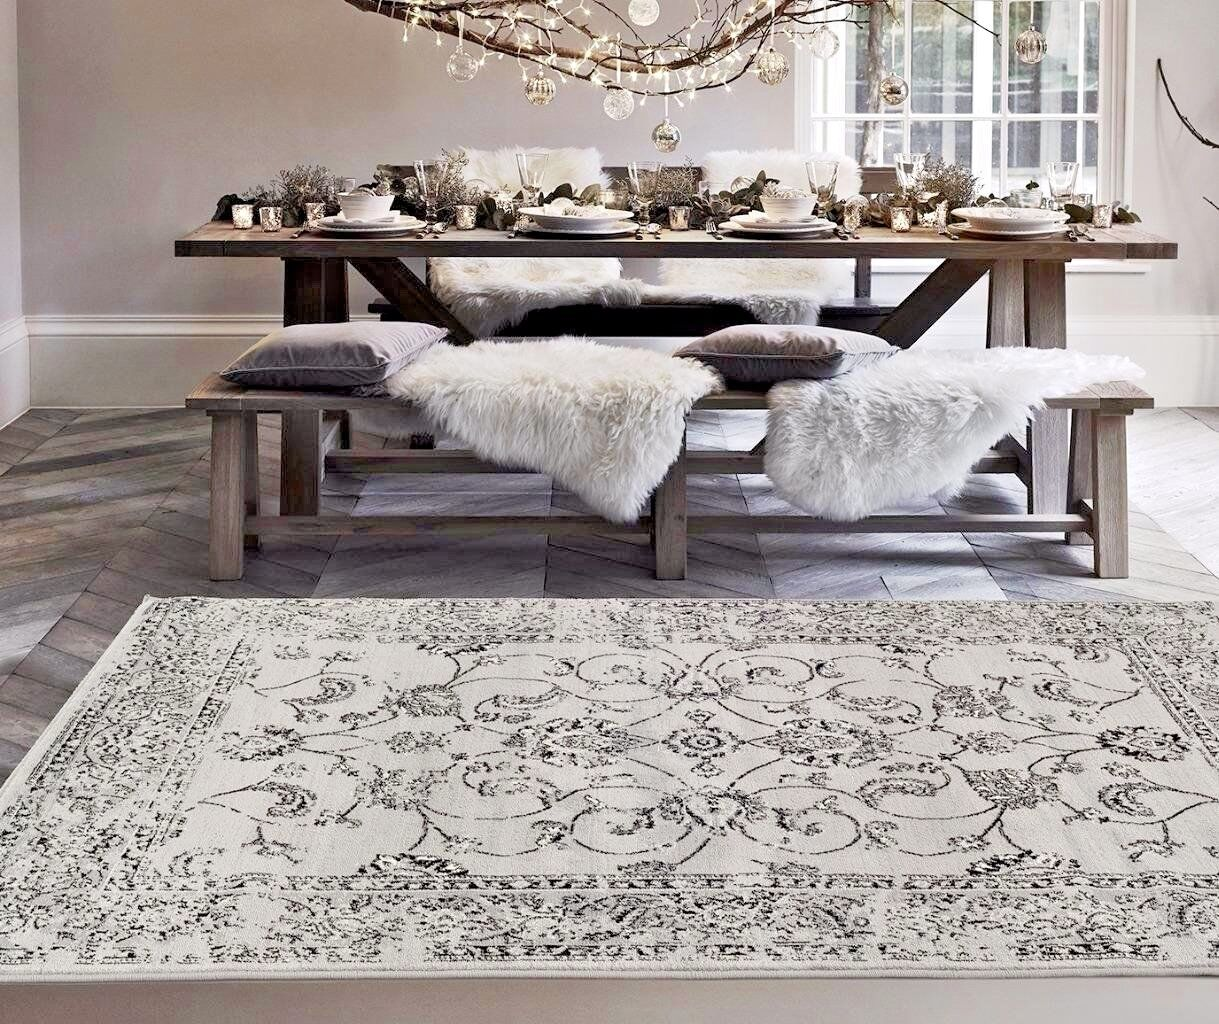 RUGS AREA RUGS CARPET LARGE AREA RUGS 8x10 ORIENTAL RUG DISTRESSED RUG GRAY  NEW~